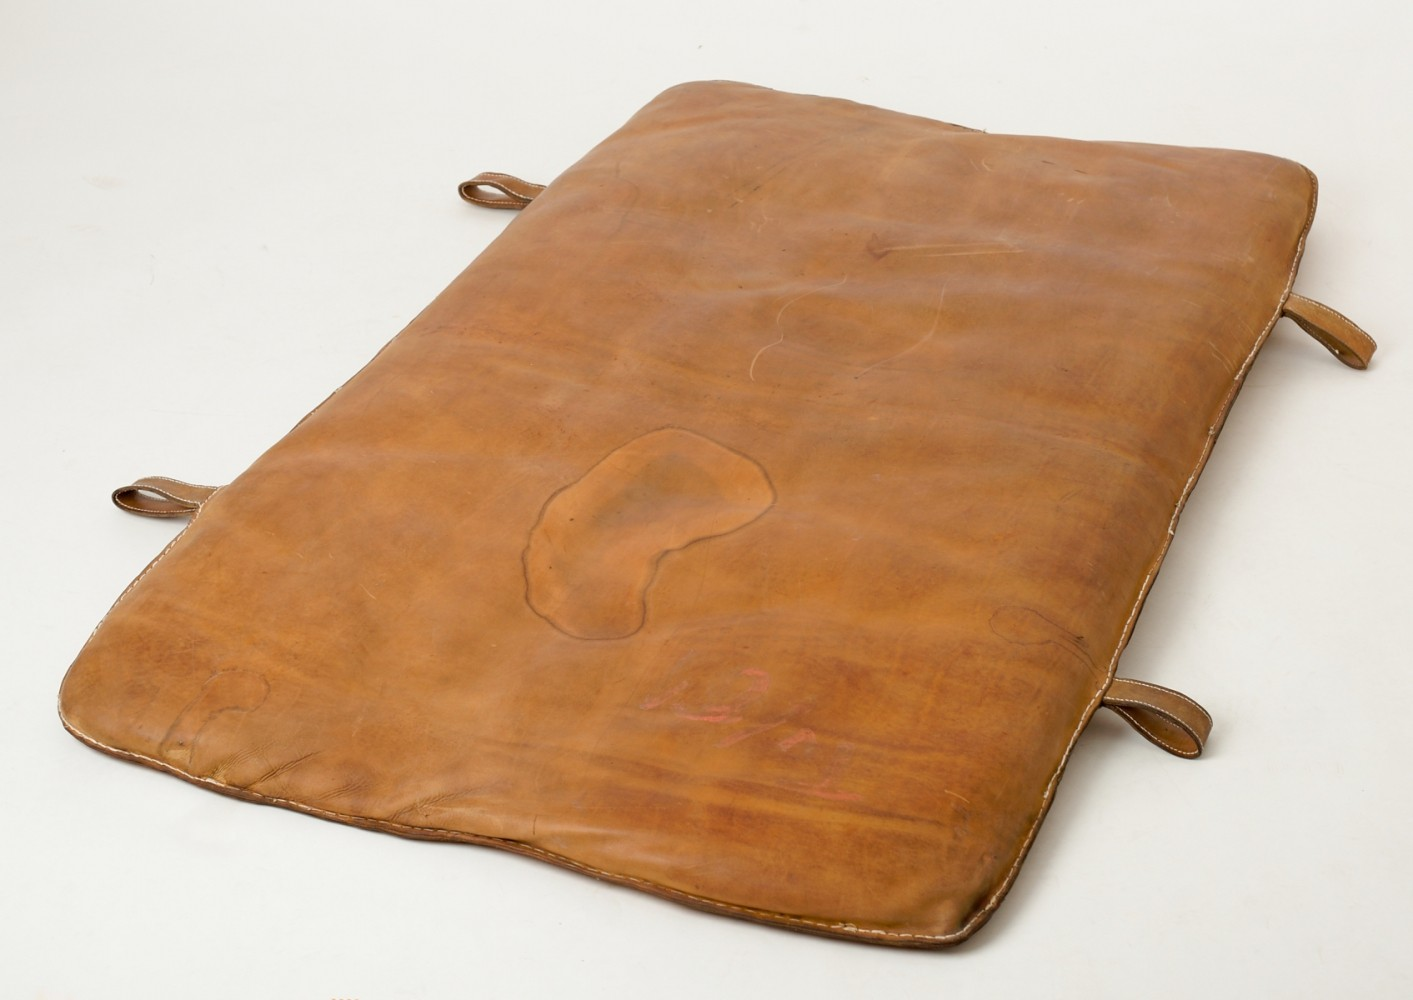 Czech Vintage Leather Gym Mat, 1930s